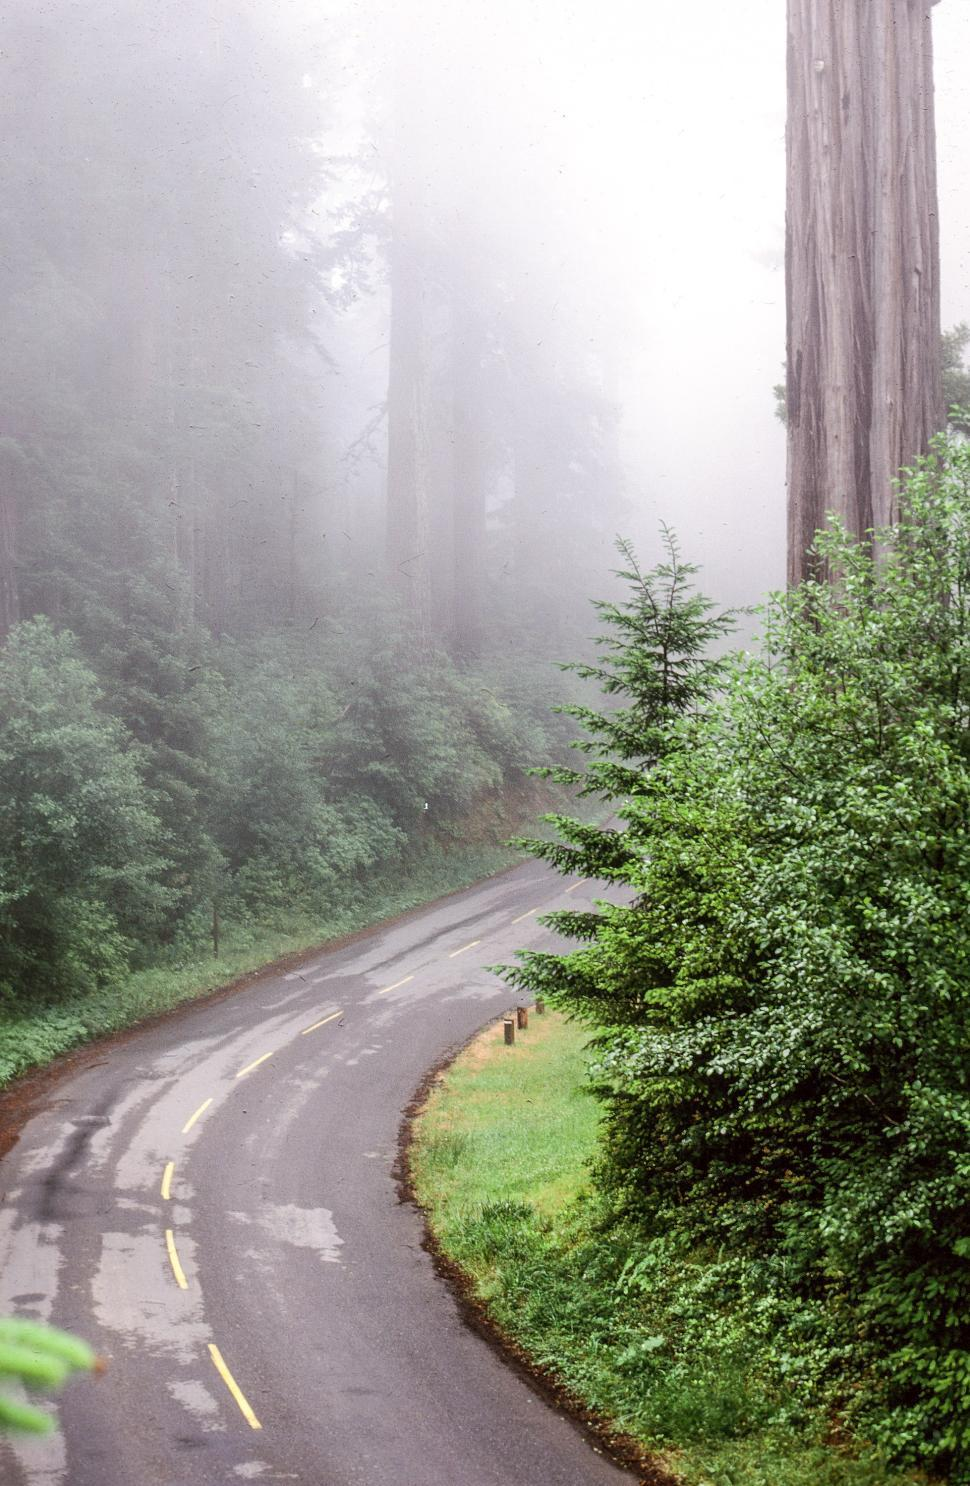 Download Free Stock HD Photo of Road in forest Online